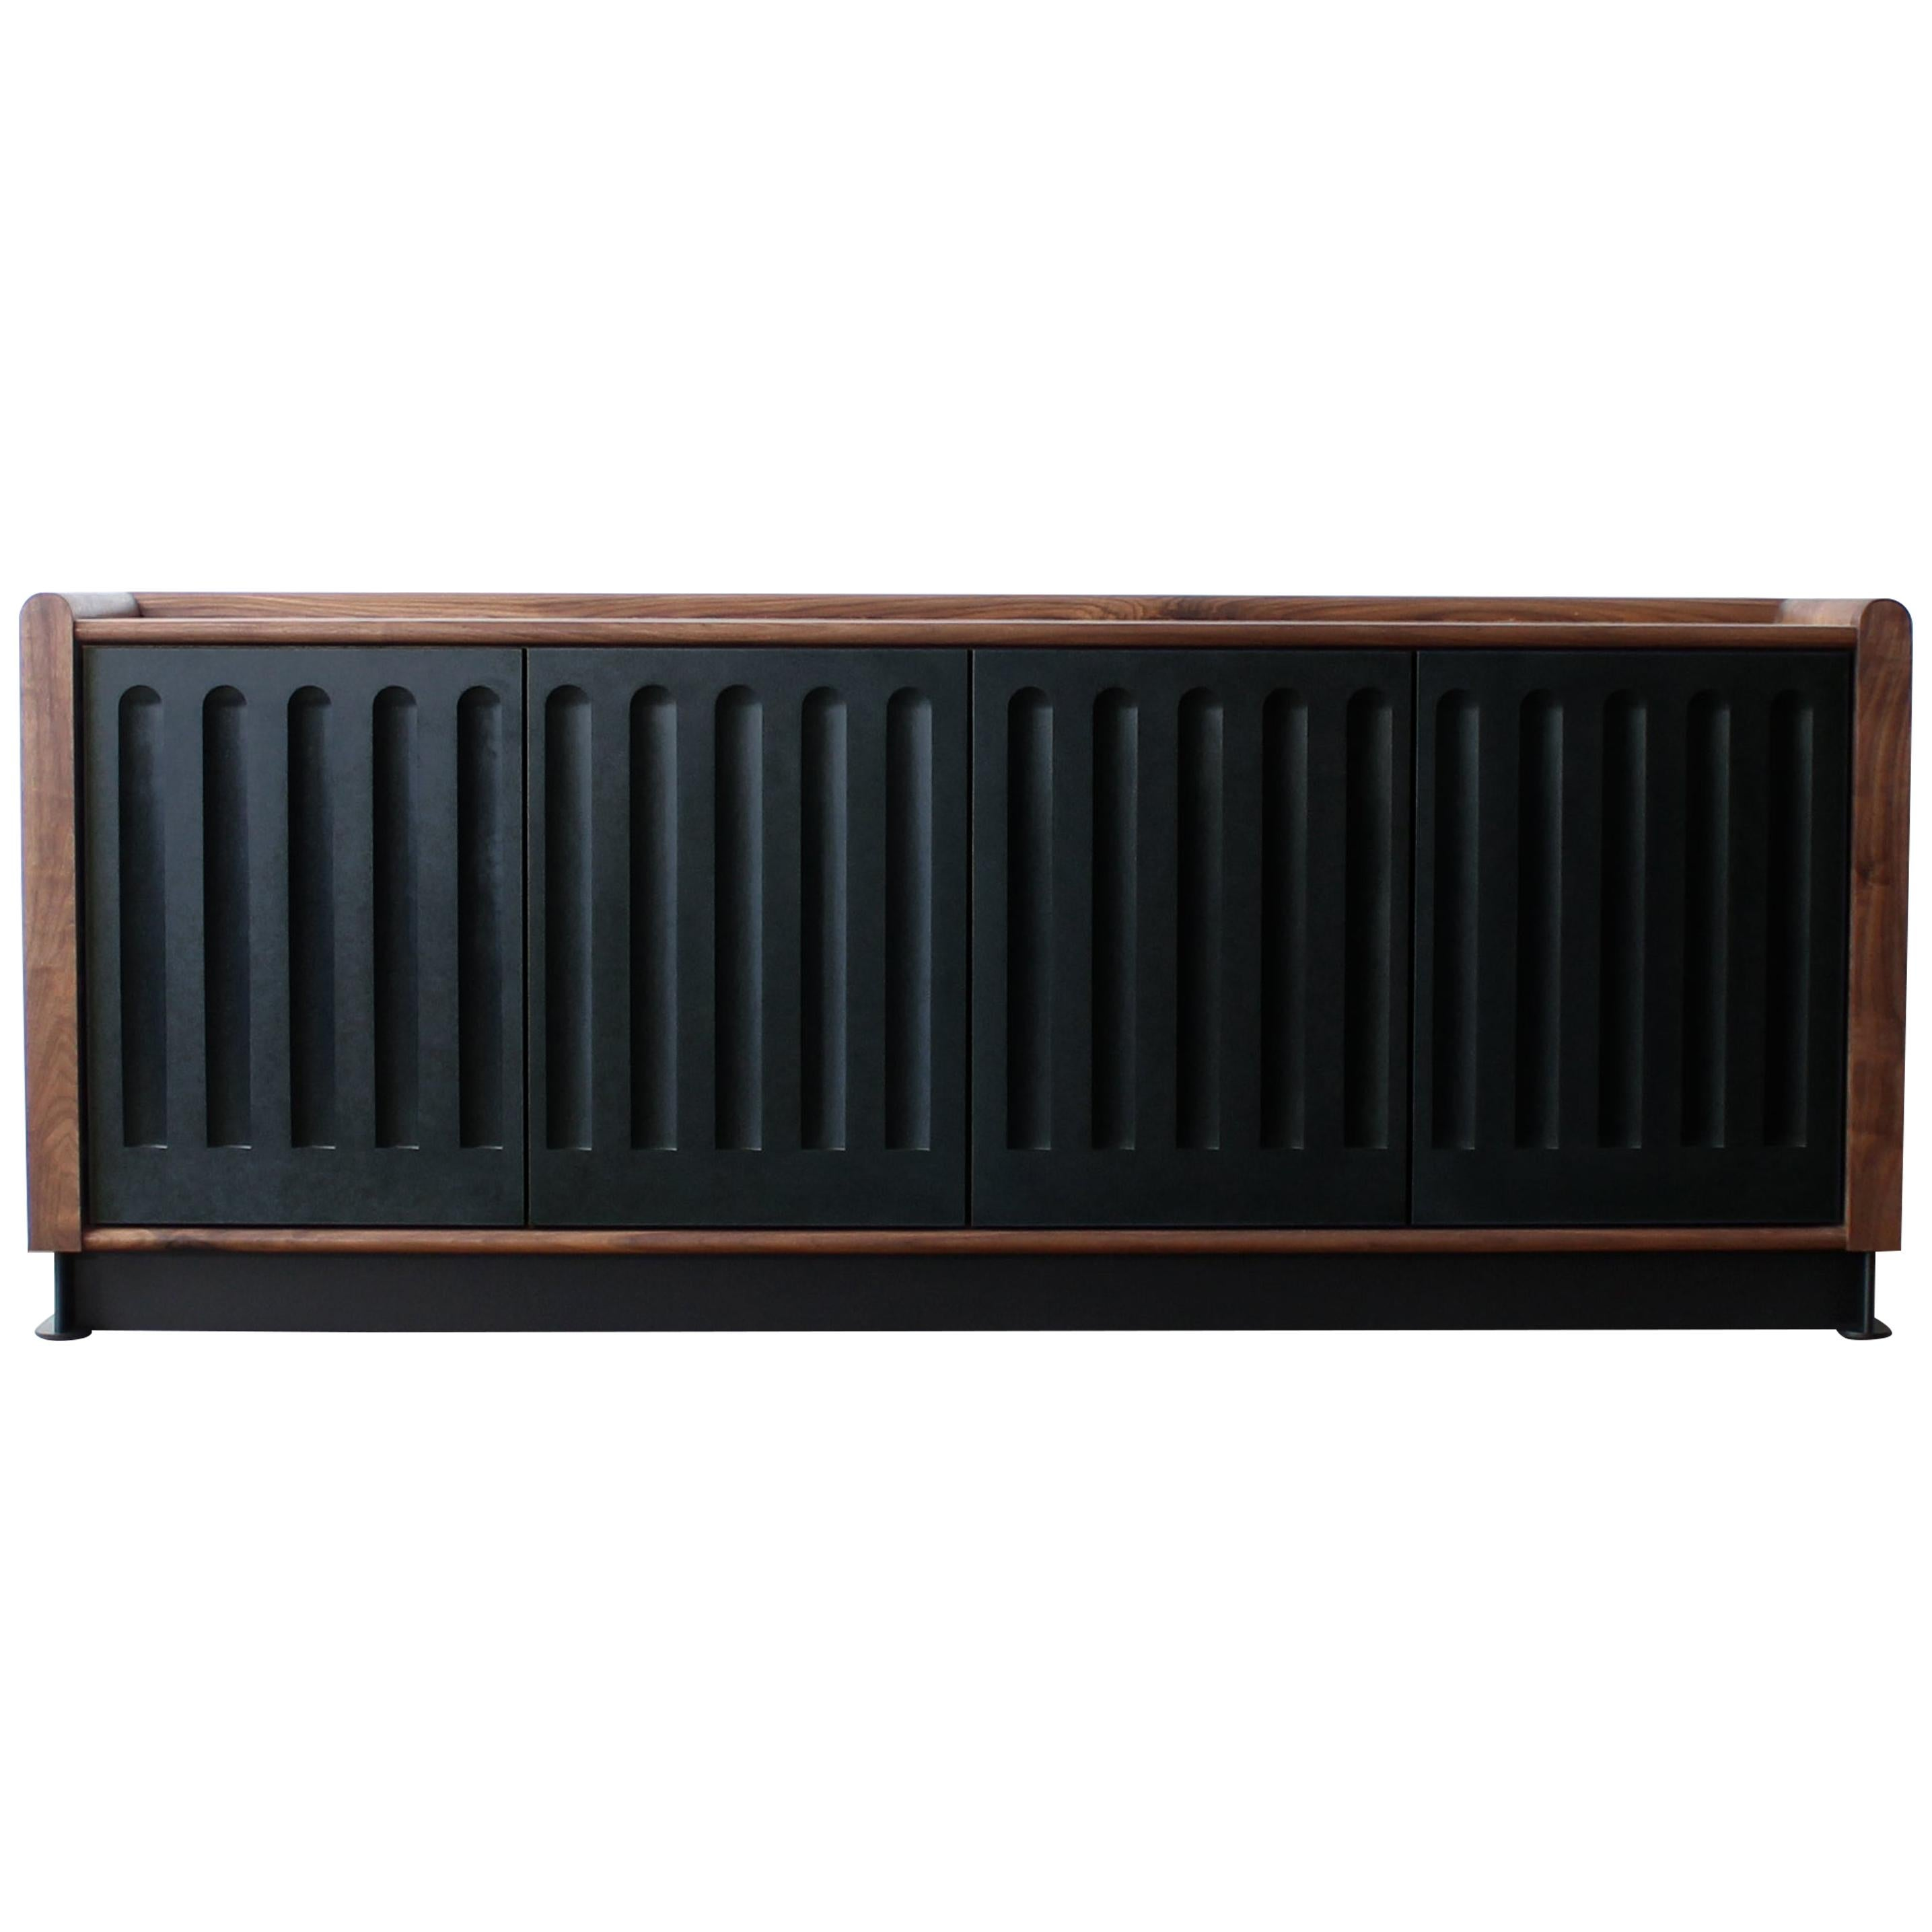 Arcade Modern Media Console, Sideboard, or Credenza by Crump and Kwash